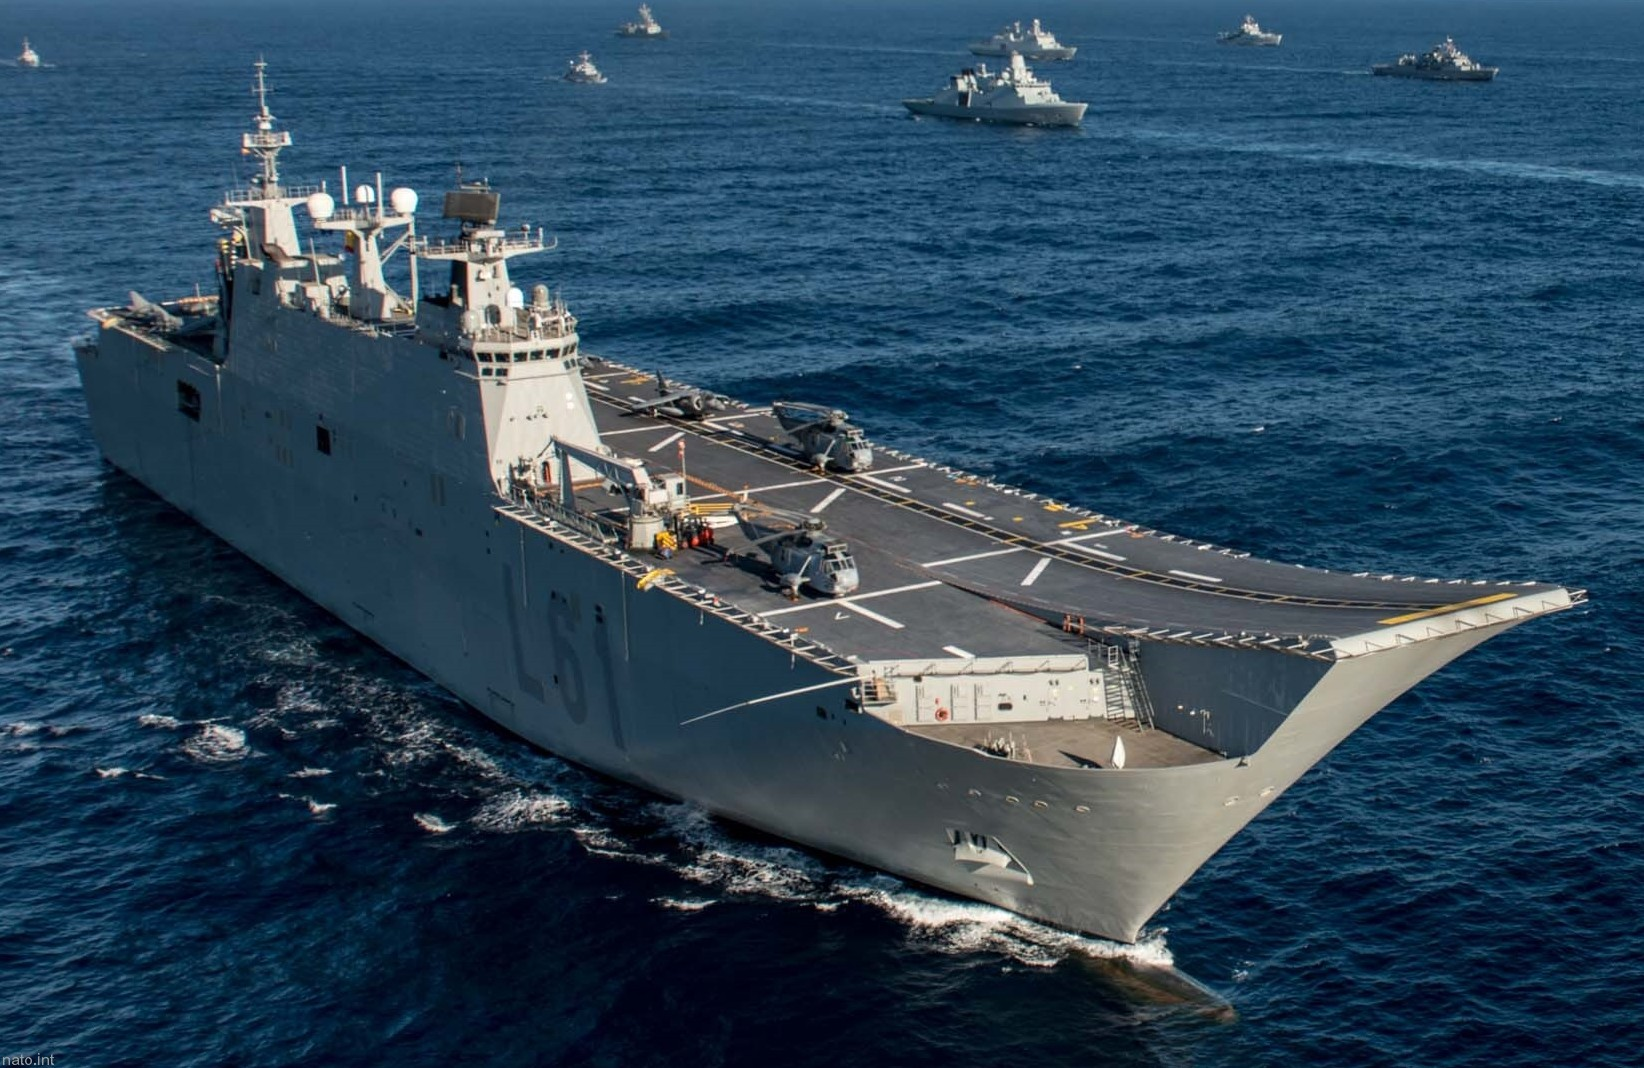 SPS Juan Carlos I L-61 Amphibious Ship Aircraft Carrier